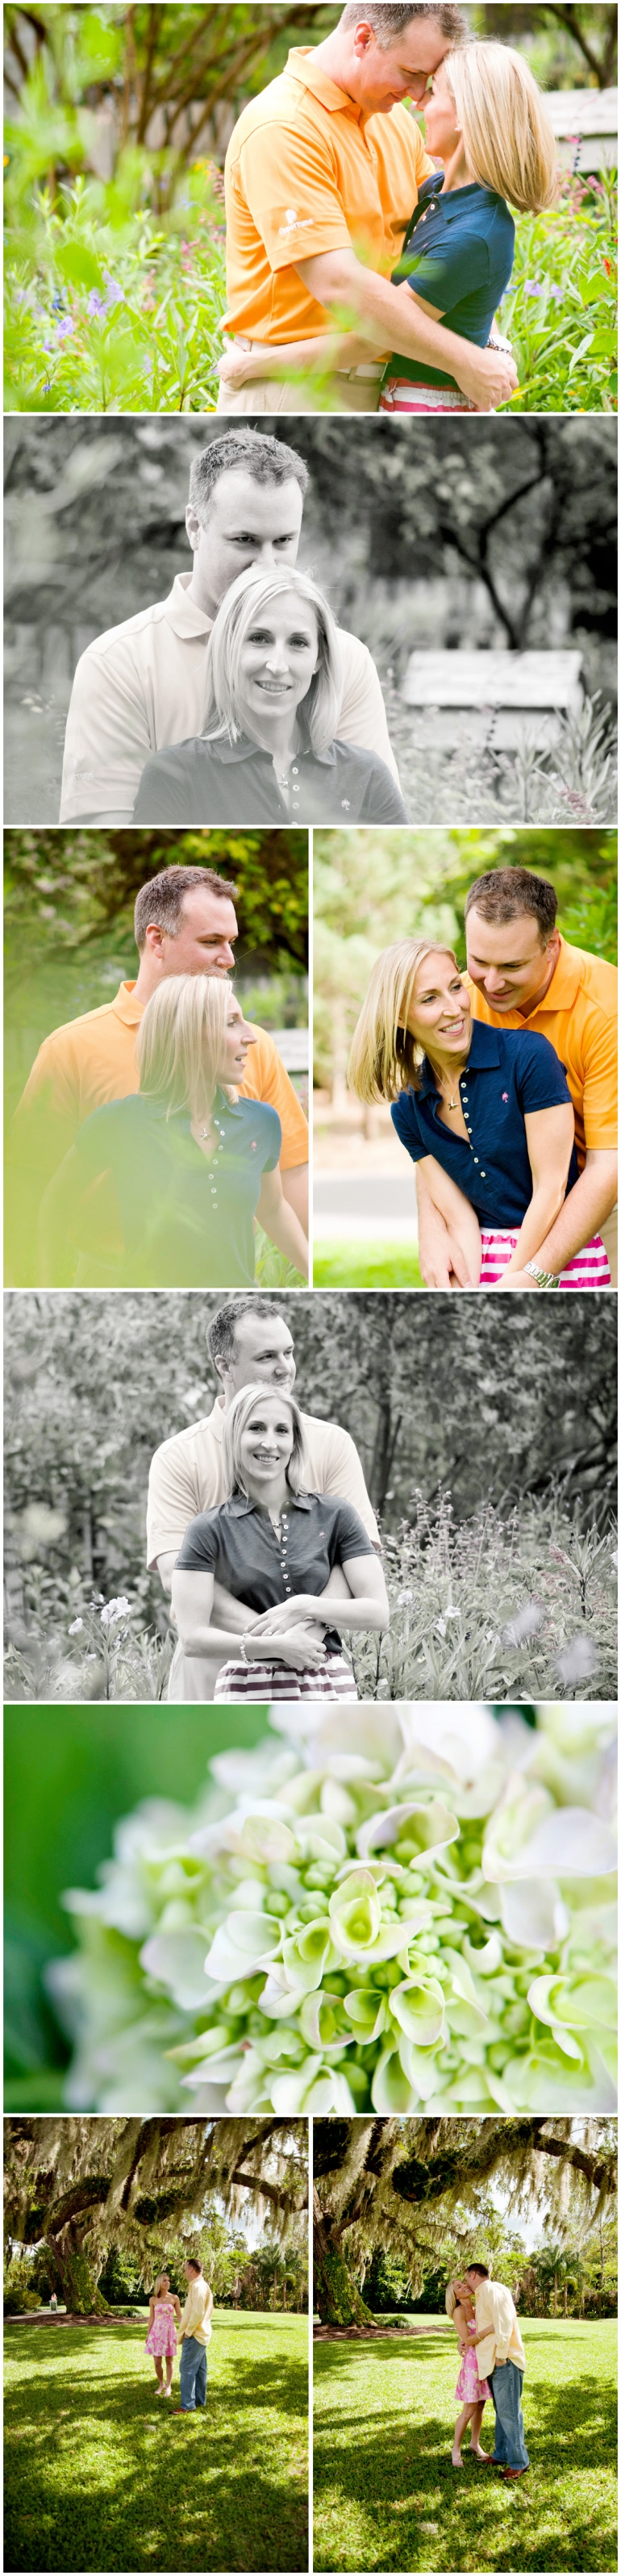 engagement photography in orlando florida